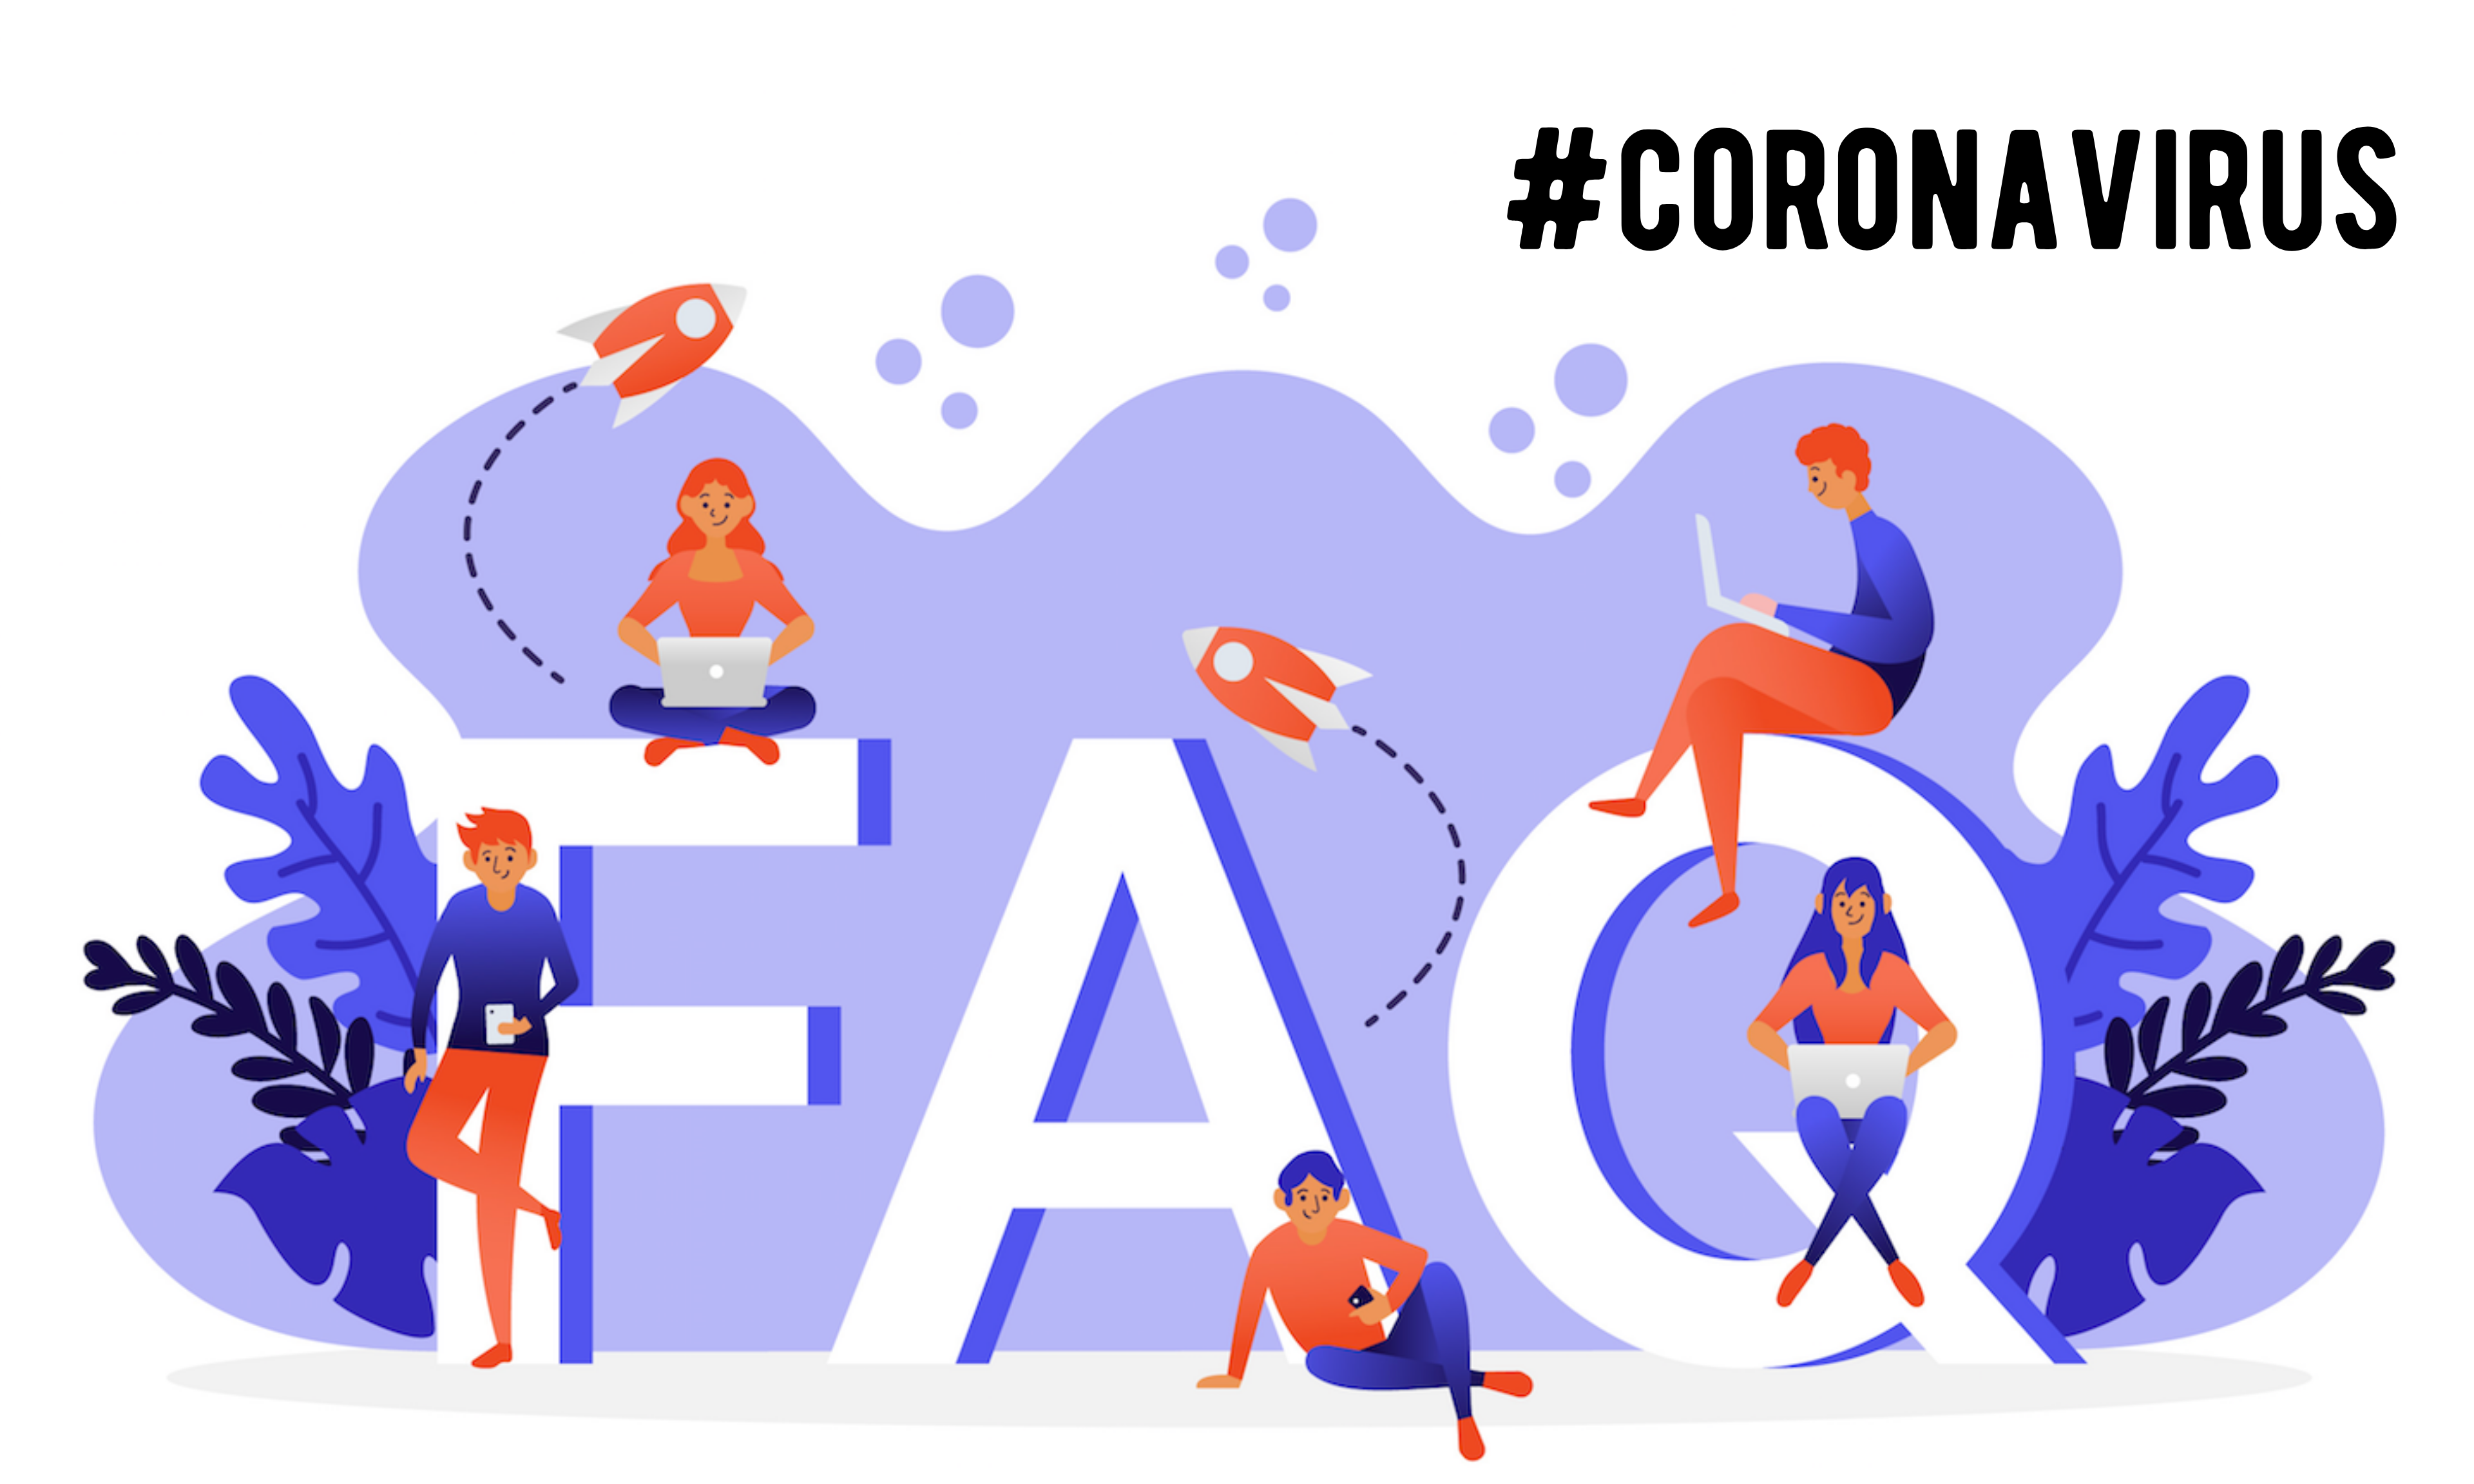 FAQ Coronavirus [Frequently Asked Questions] - aggiornate al 30/03/2020